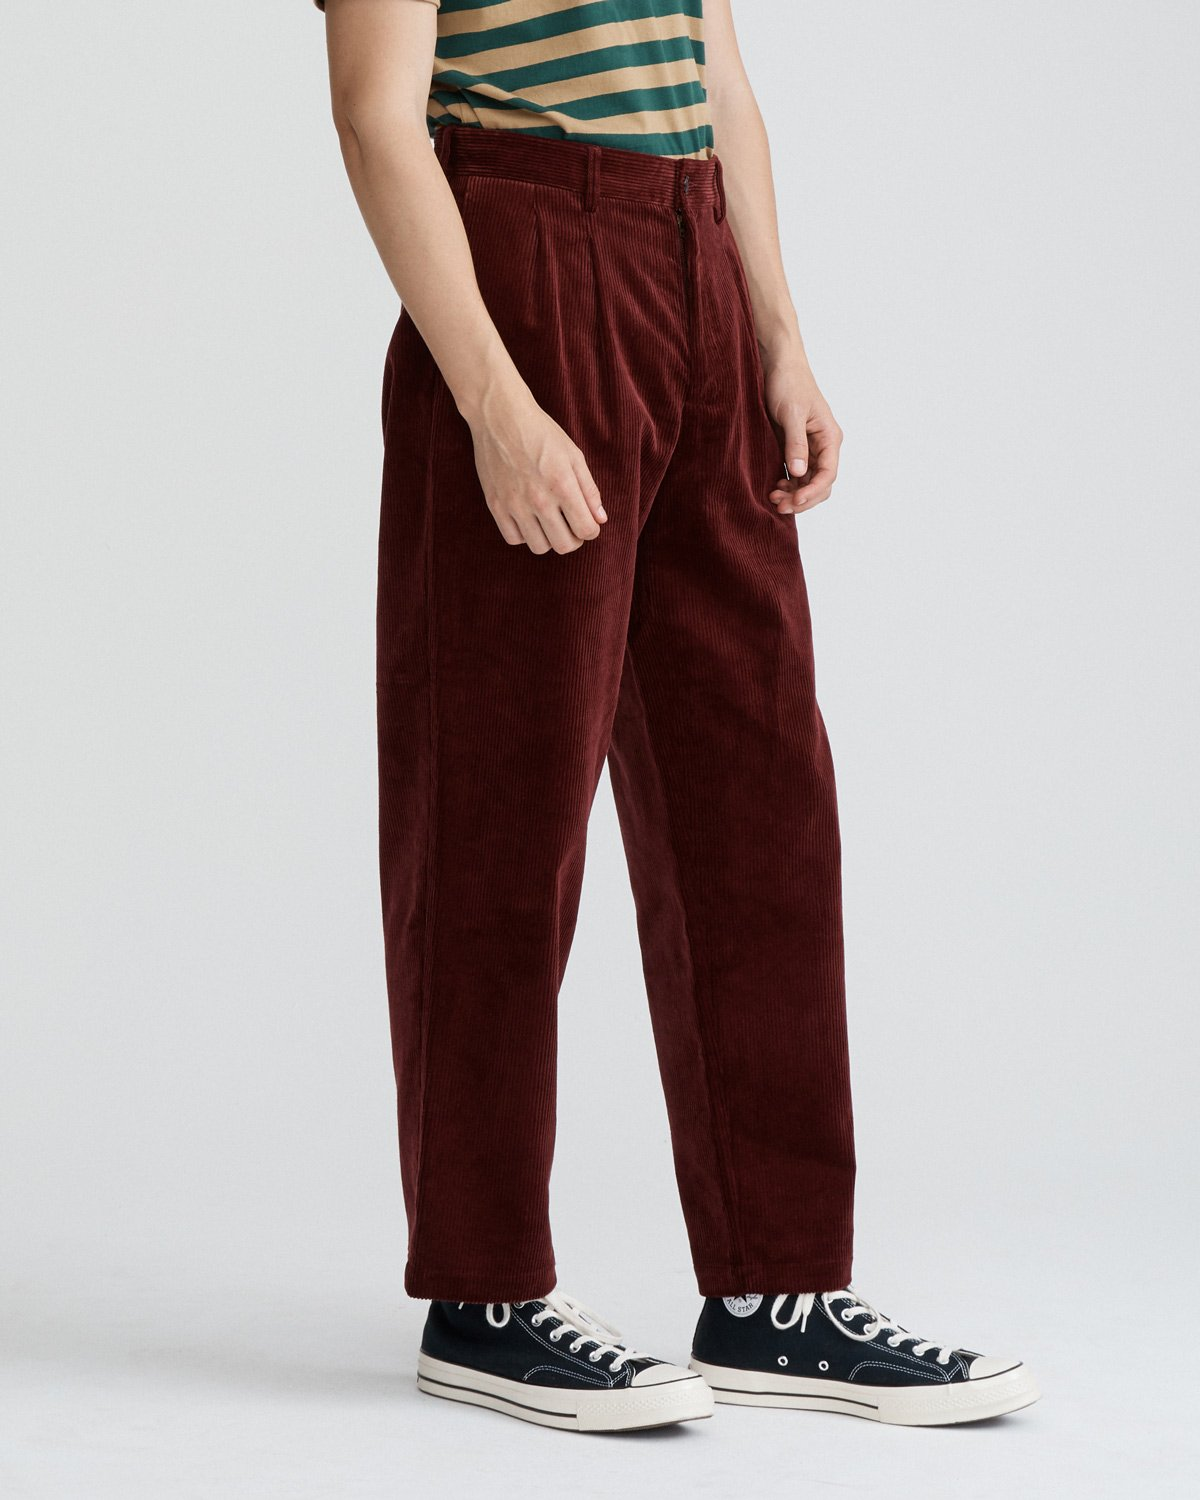 color:maroon